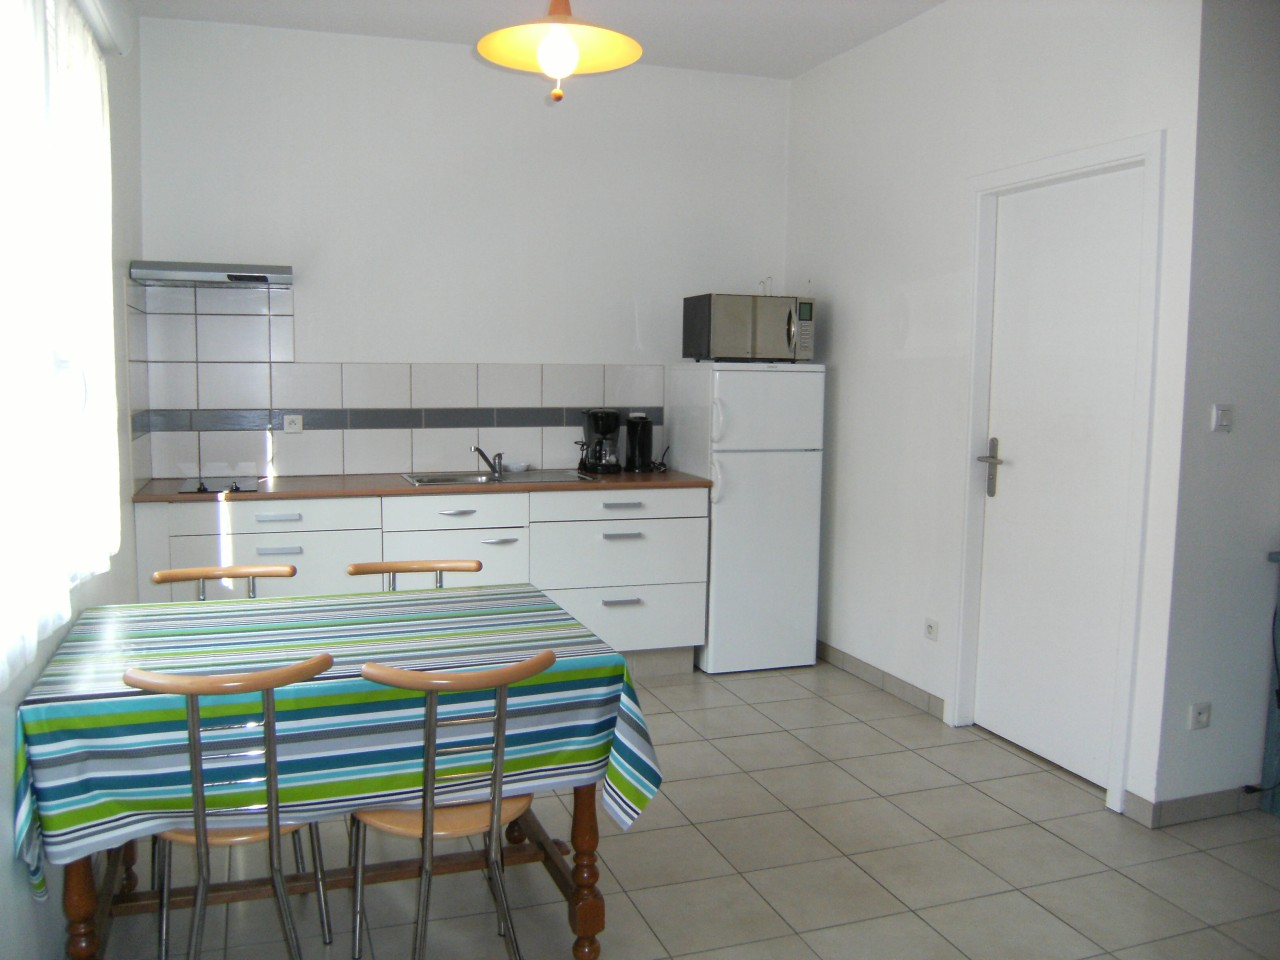 Agence immobili re g rardmer annonce appartements n 2327 for Agence immobiliere gerardmer